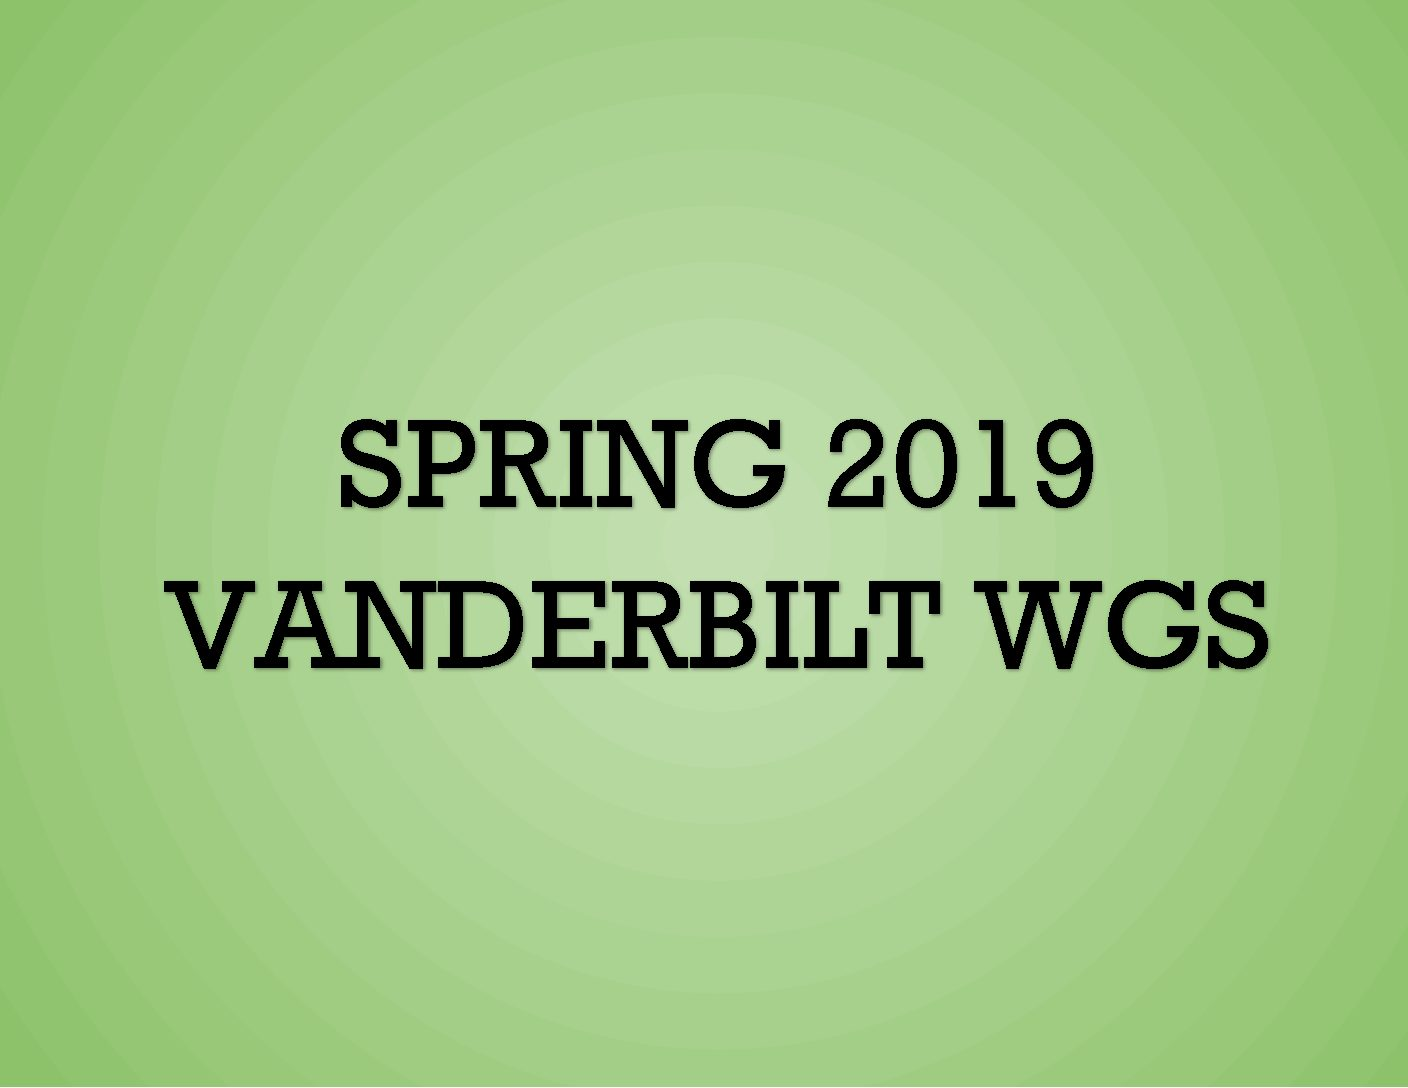 Spring 2019 in WGS